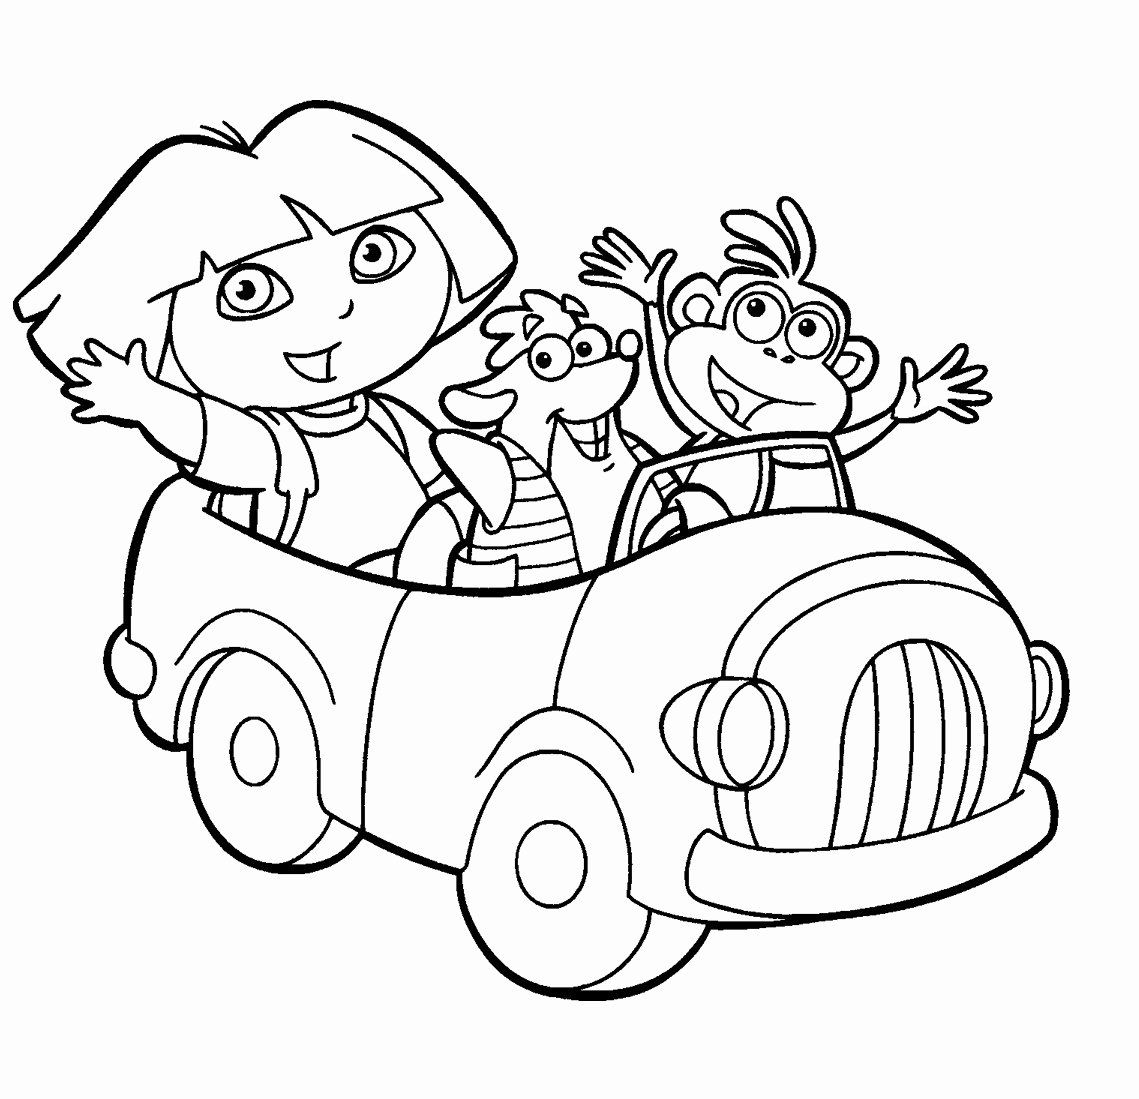 28 Dora The Explorer Coloring Page In